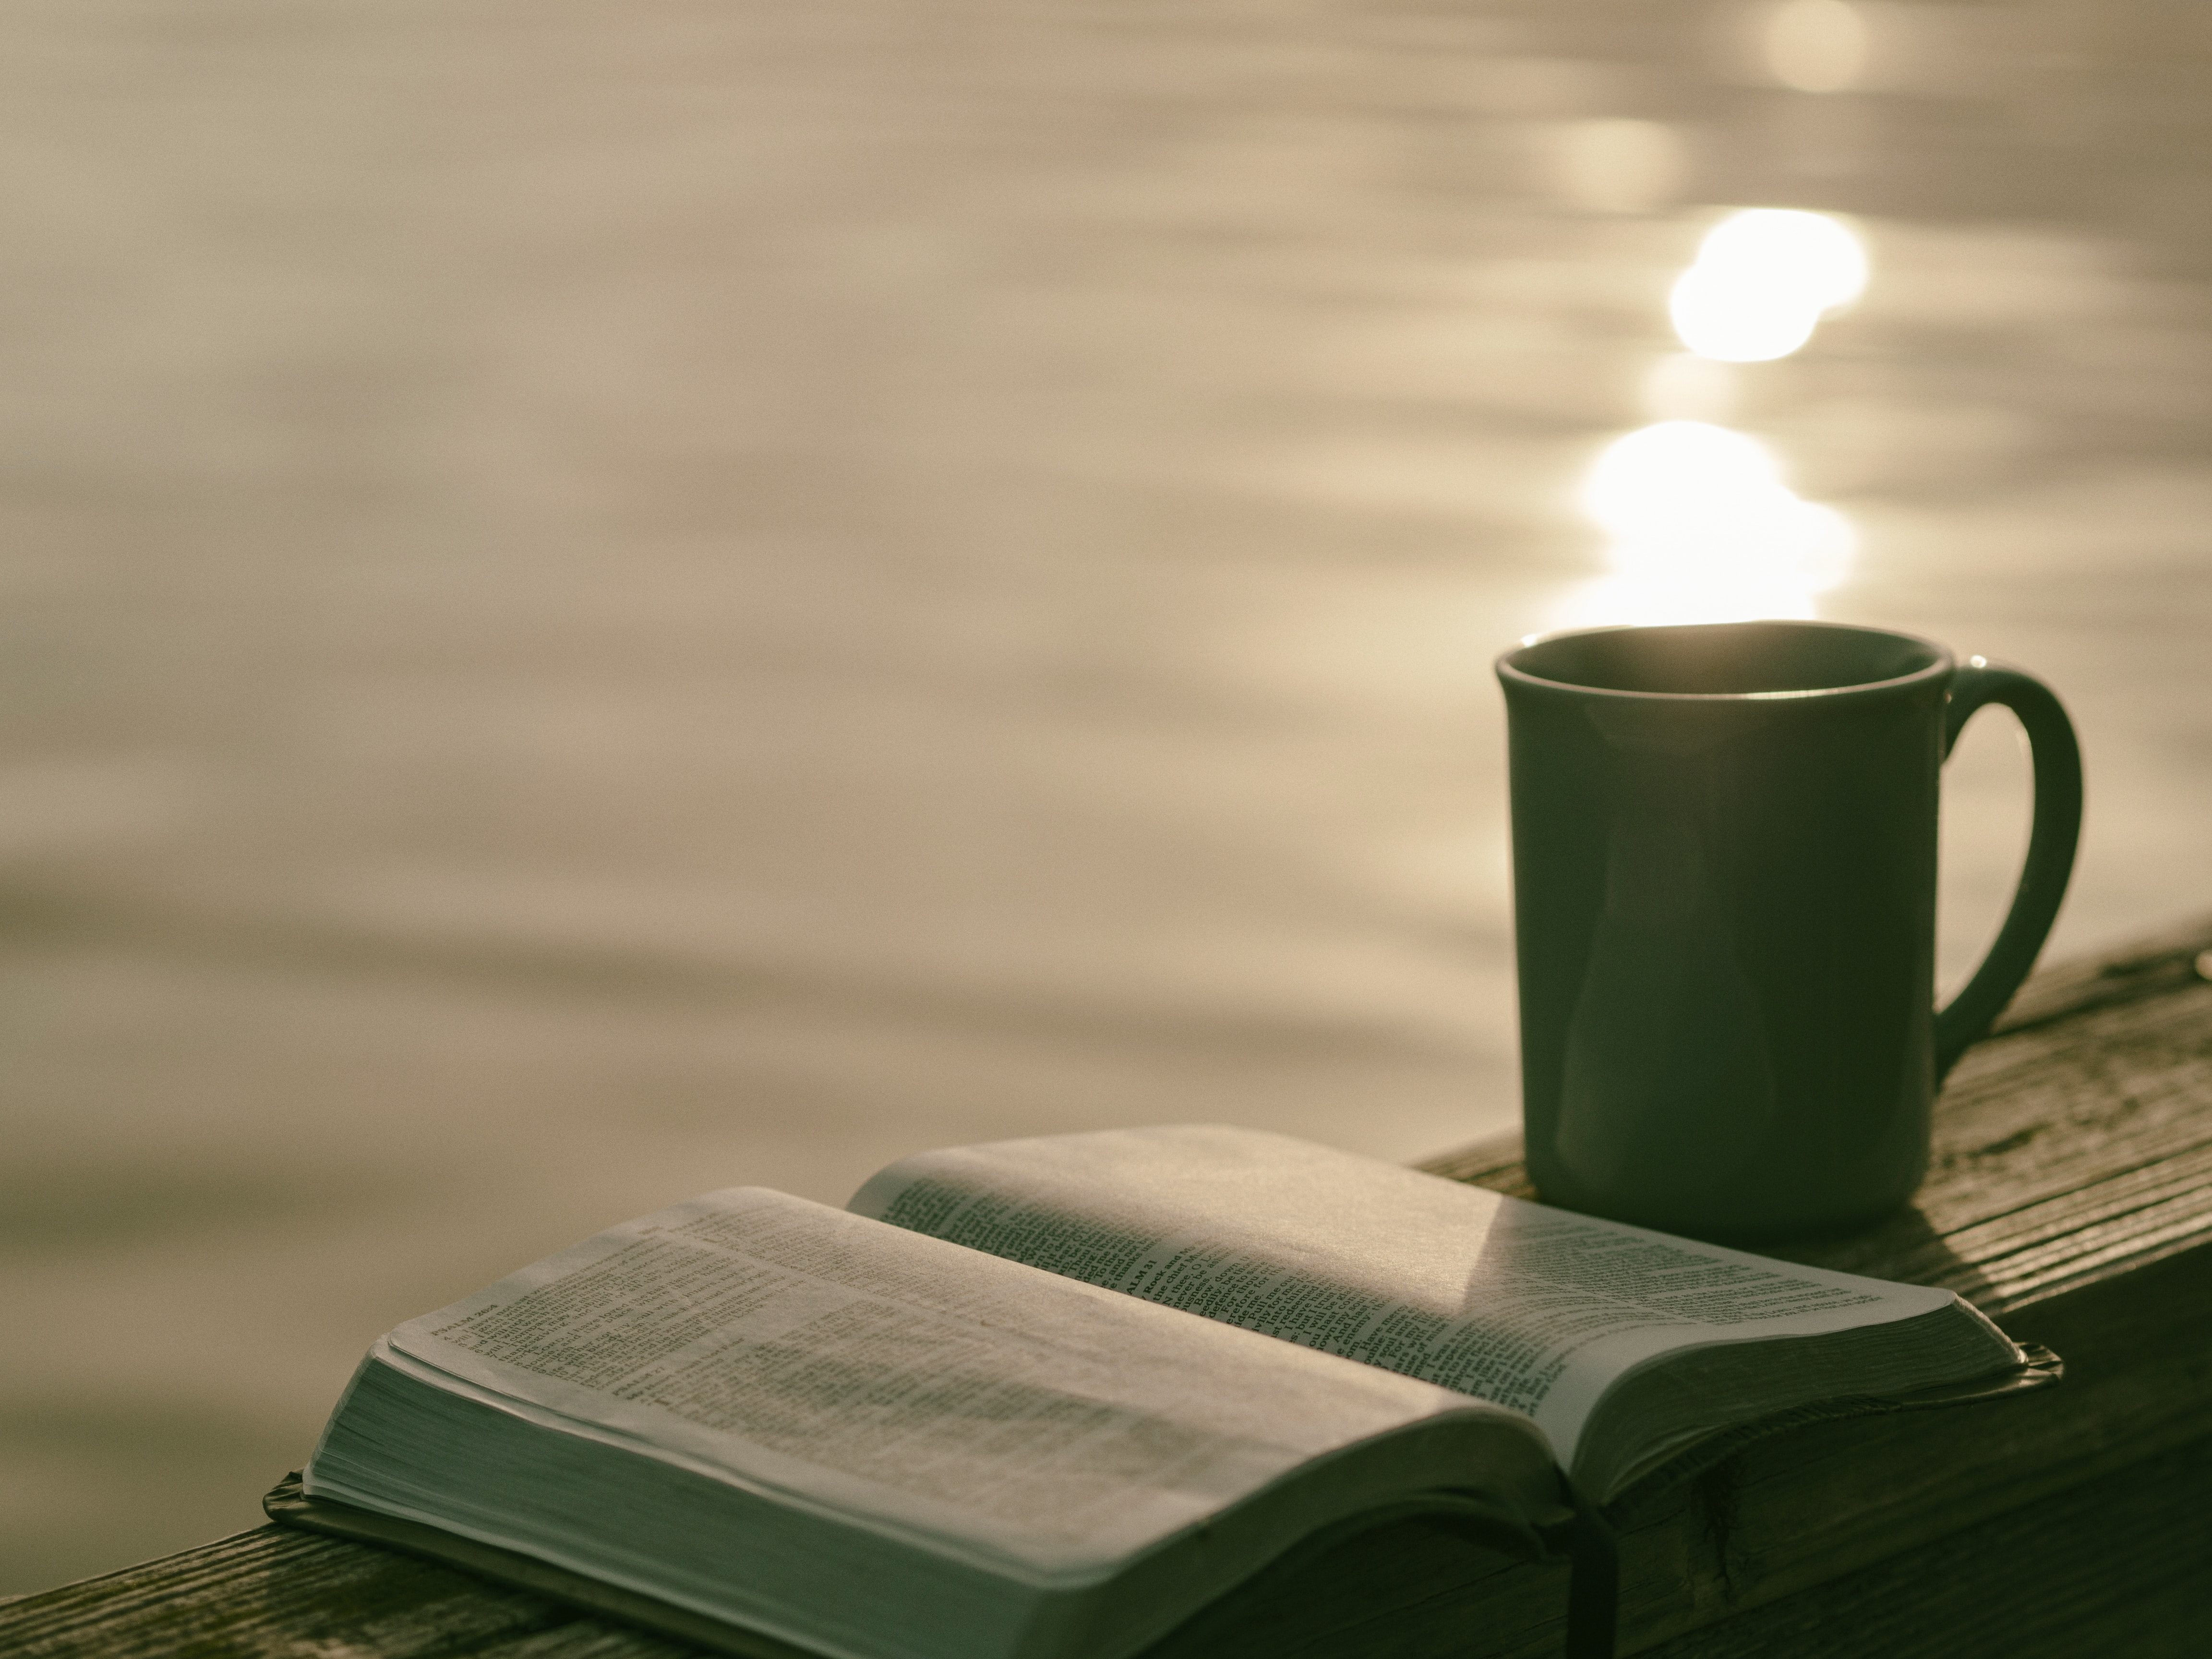 Book and cup by the water